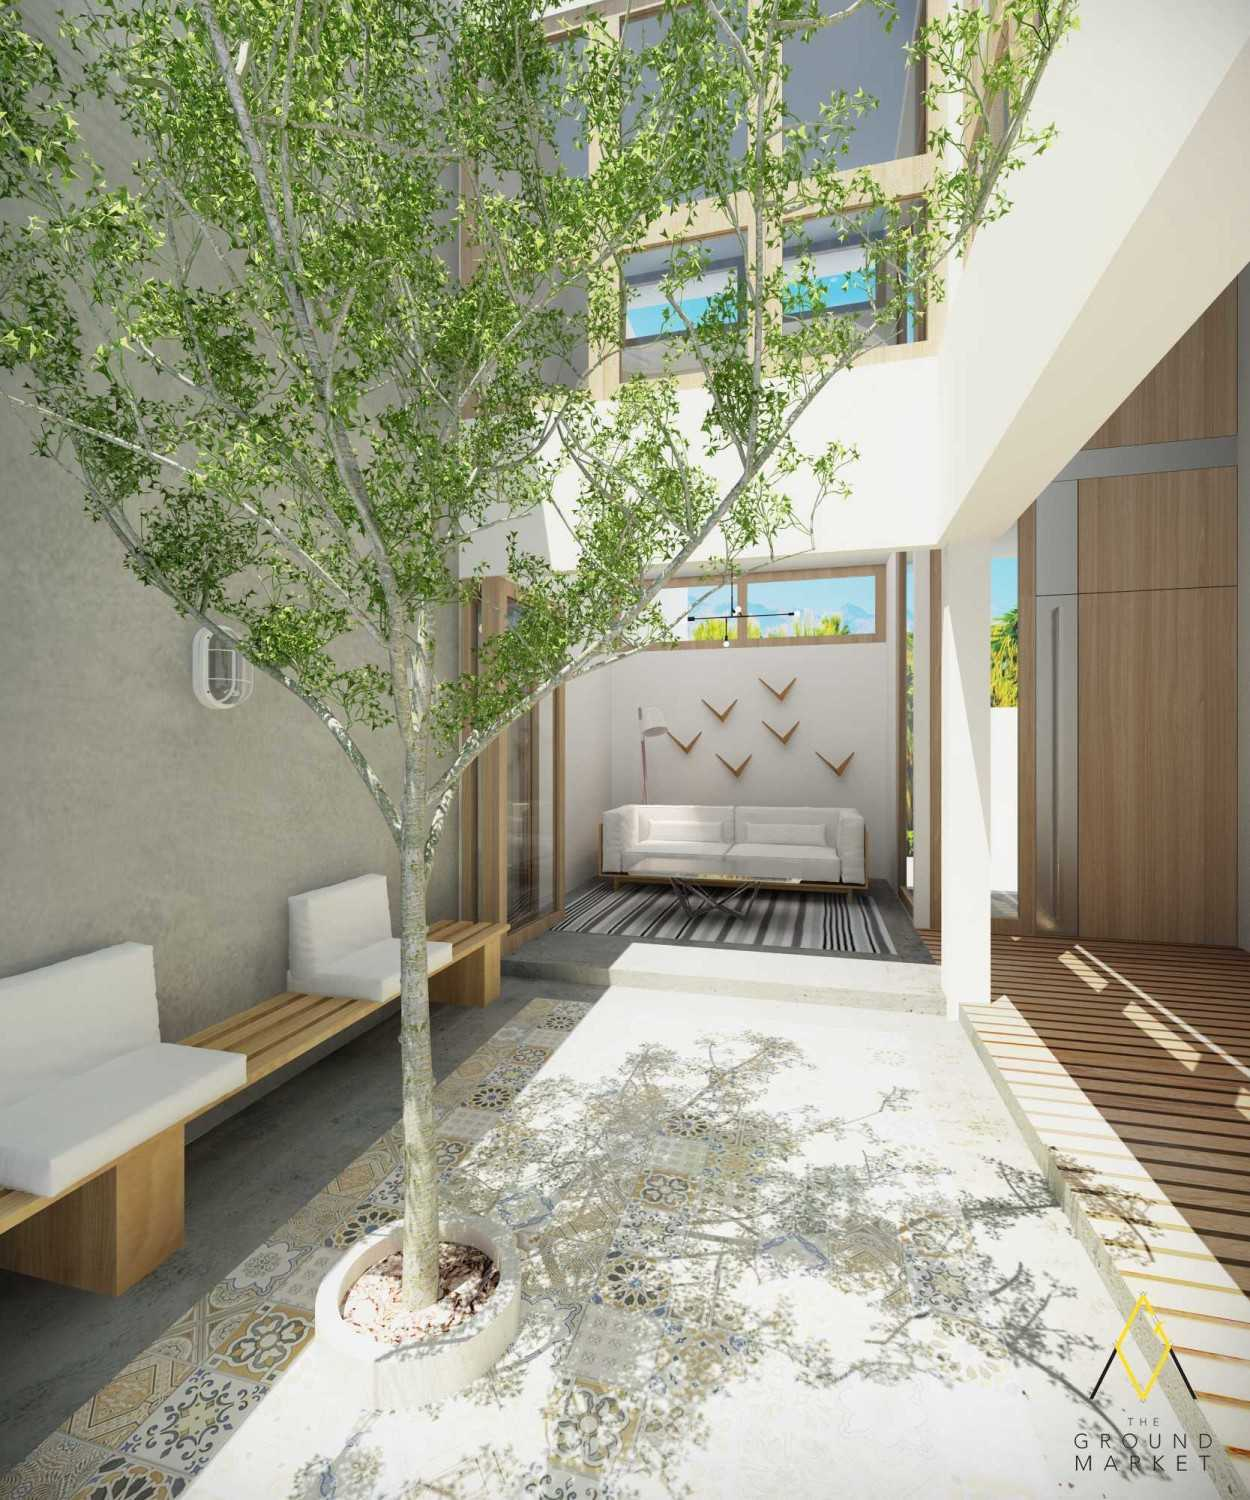 The Ground Market 3D Projects Jakarta Jakarta Garden And Living Area Industrial 19450